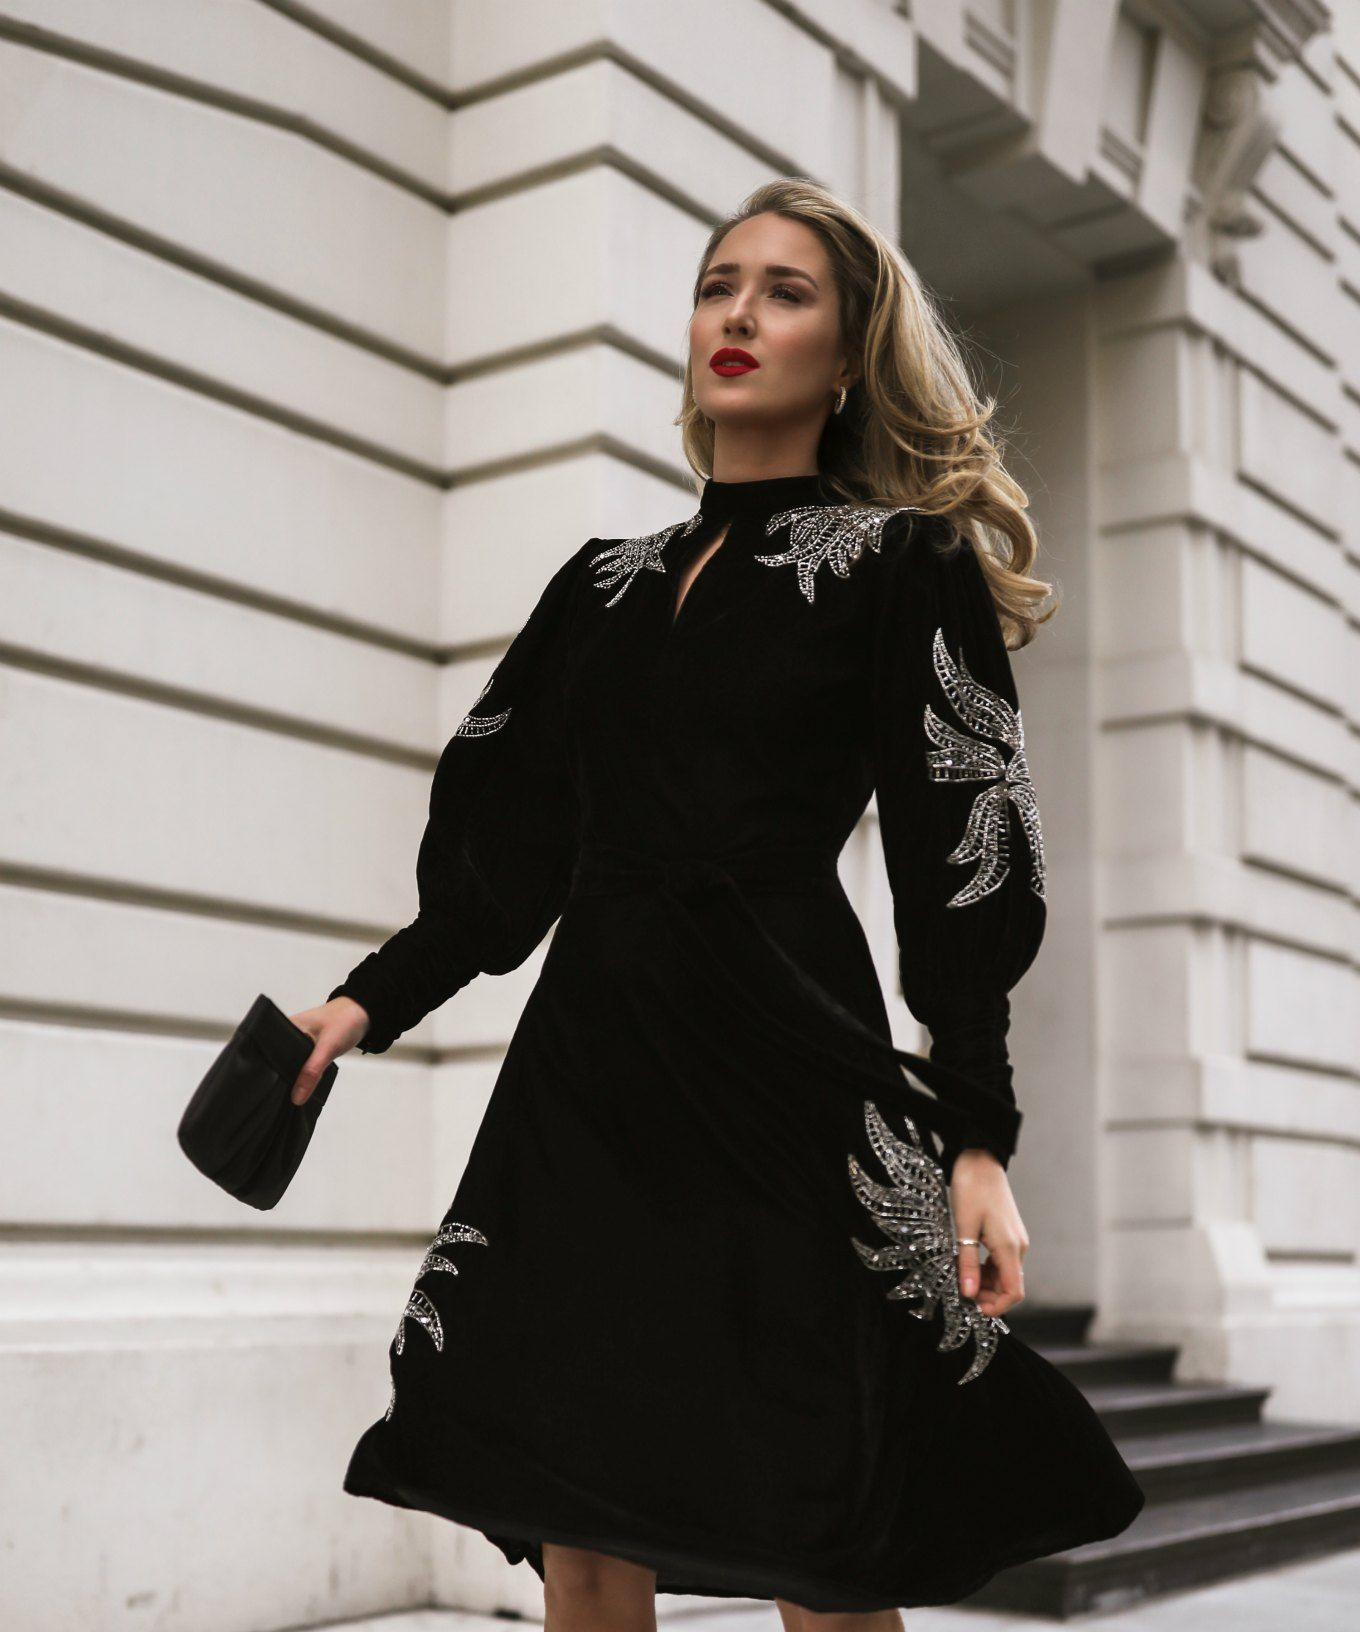 Dodo Bar Or Black Dress.Nyc Style Blogger In Dodo Bar Or Velvet Dress With Embellishments